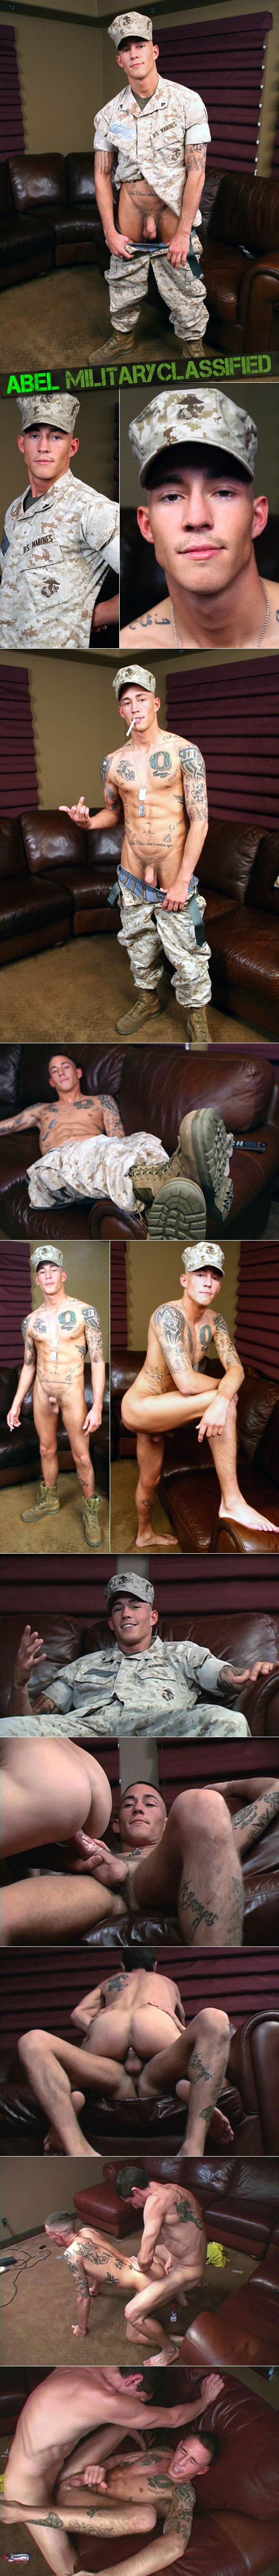 Militaryclassified: Marine Abel gets fucked